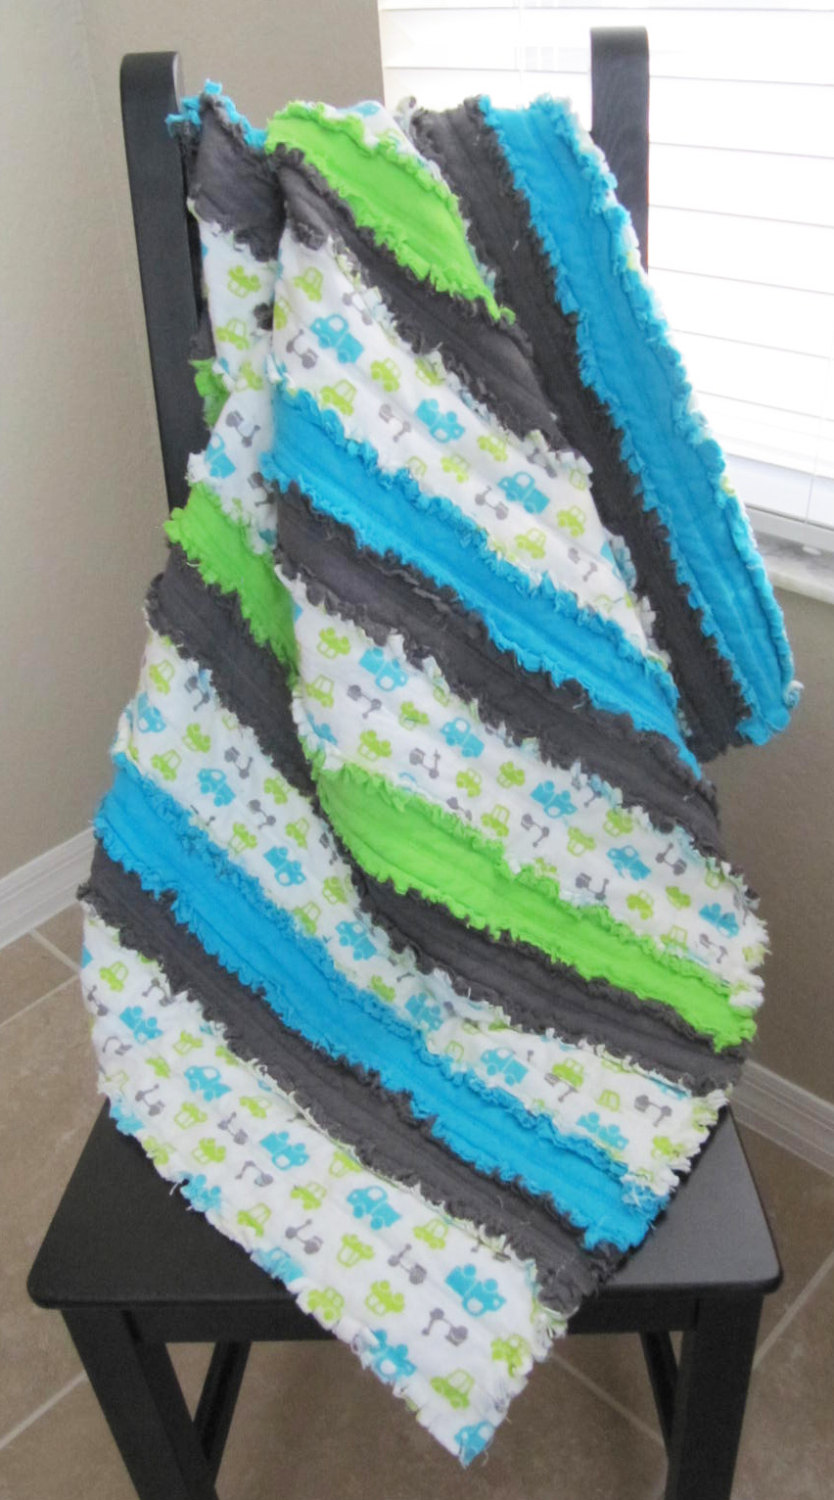 Baby Boy Jelly Roll Rag Quilt in blue, green and grey - trucks, cars, blue and grey, striped blanket